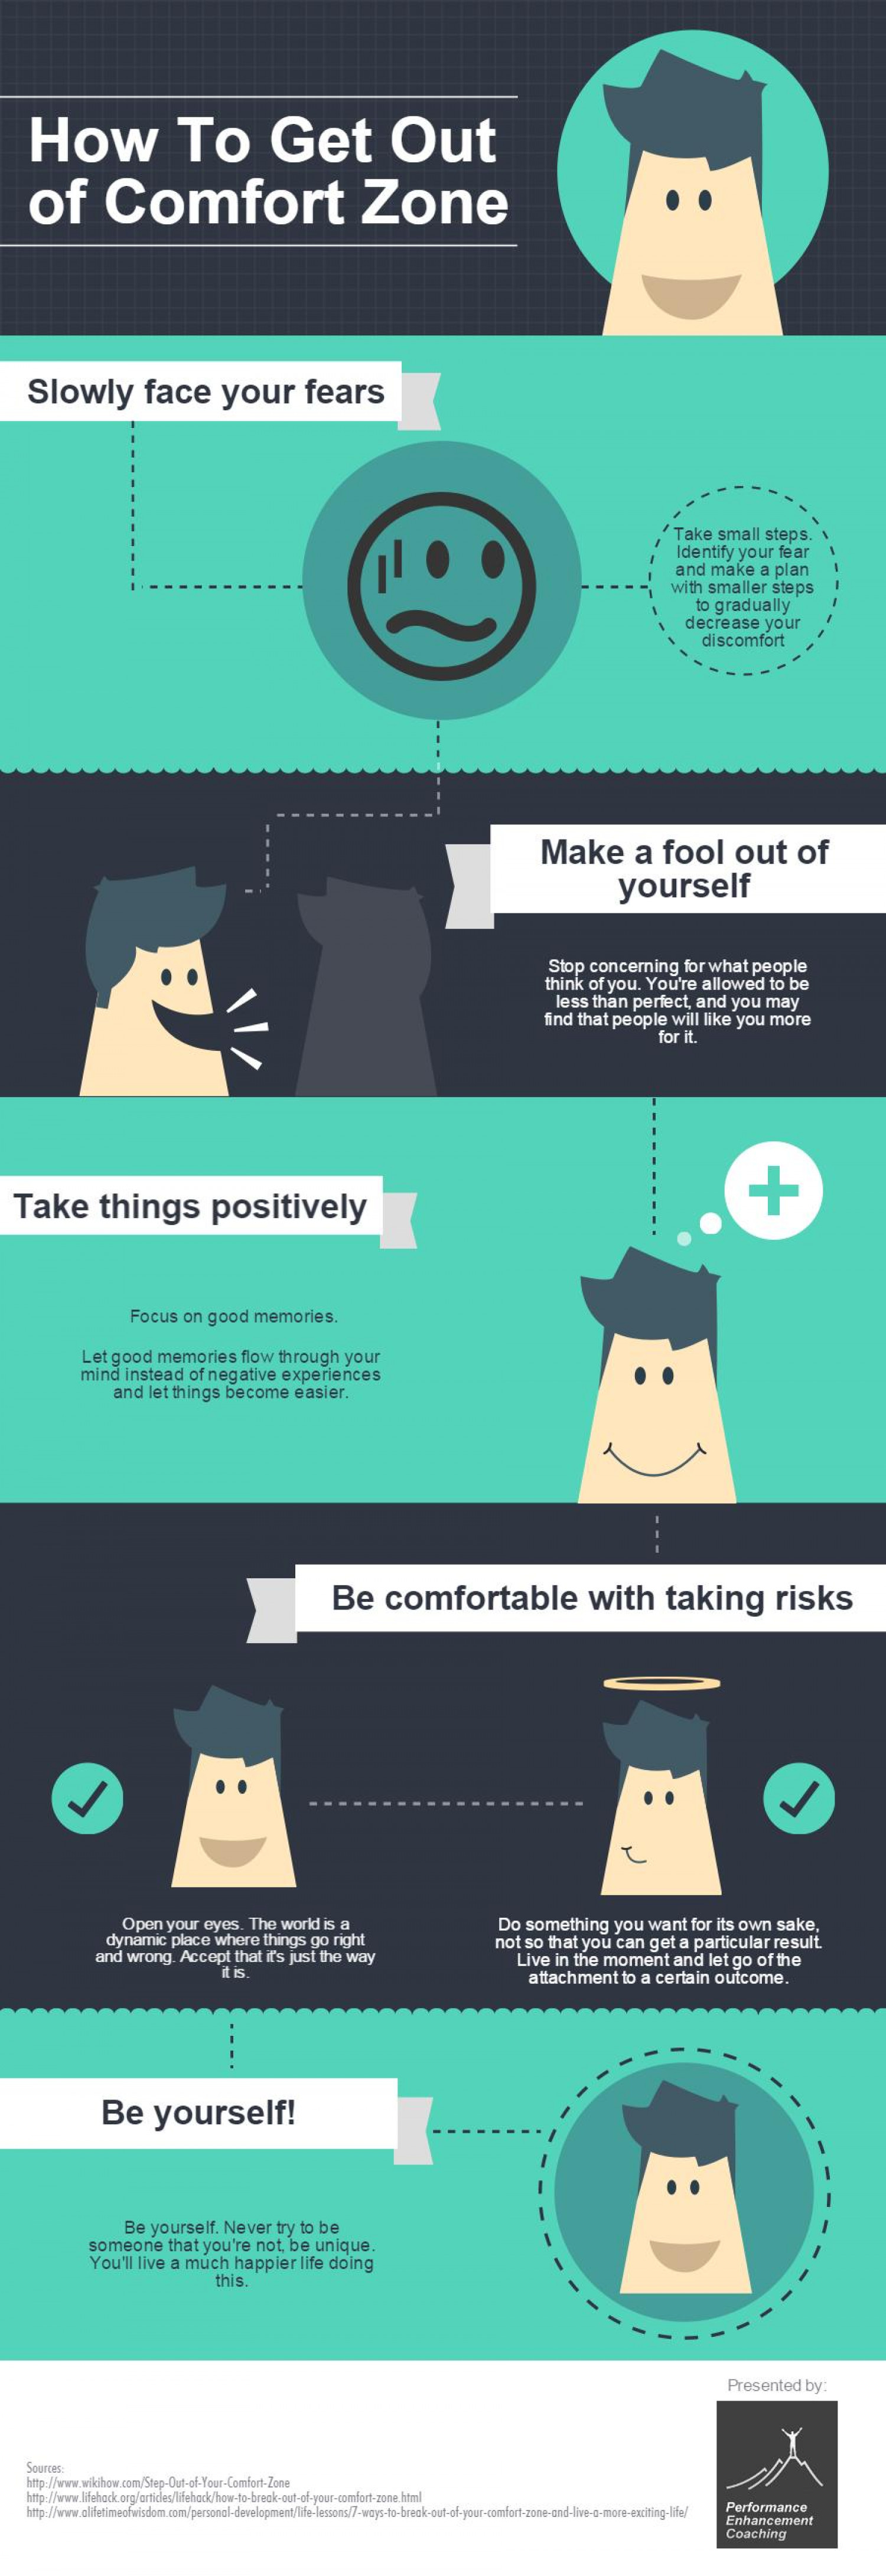 How To Get Out Of Comfort Zone